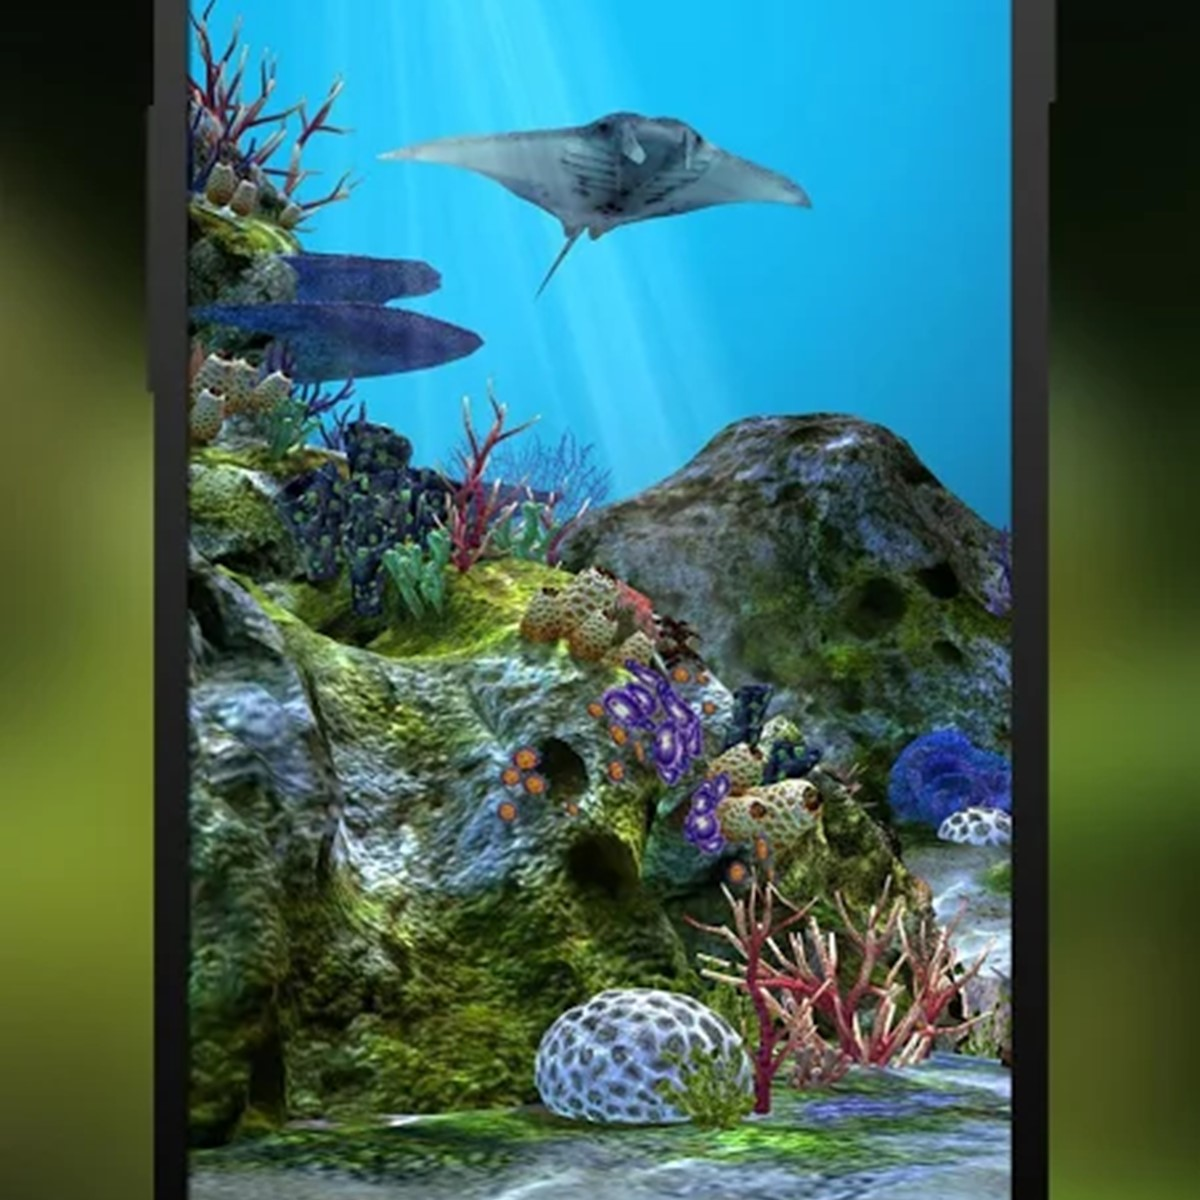 3D Aquarium Live Wallpaper HD Alternatives And Similar